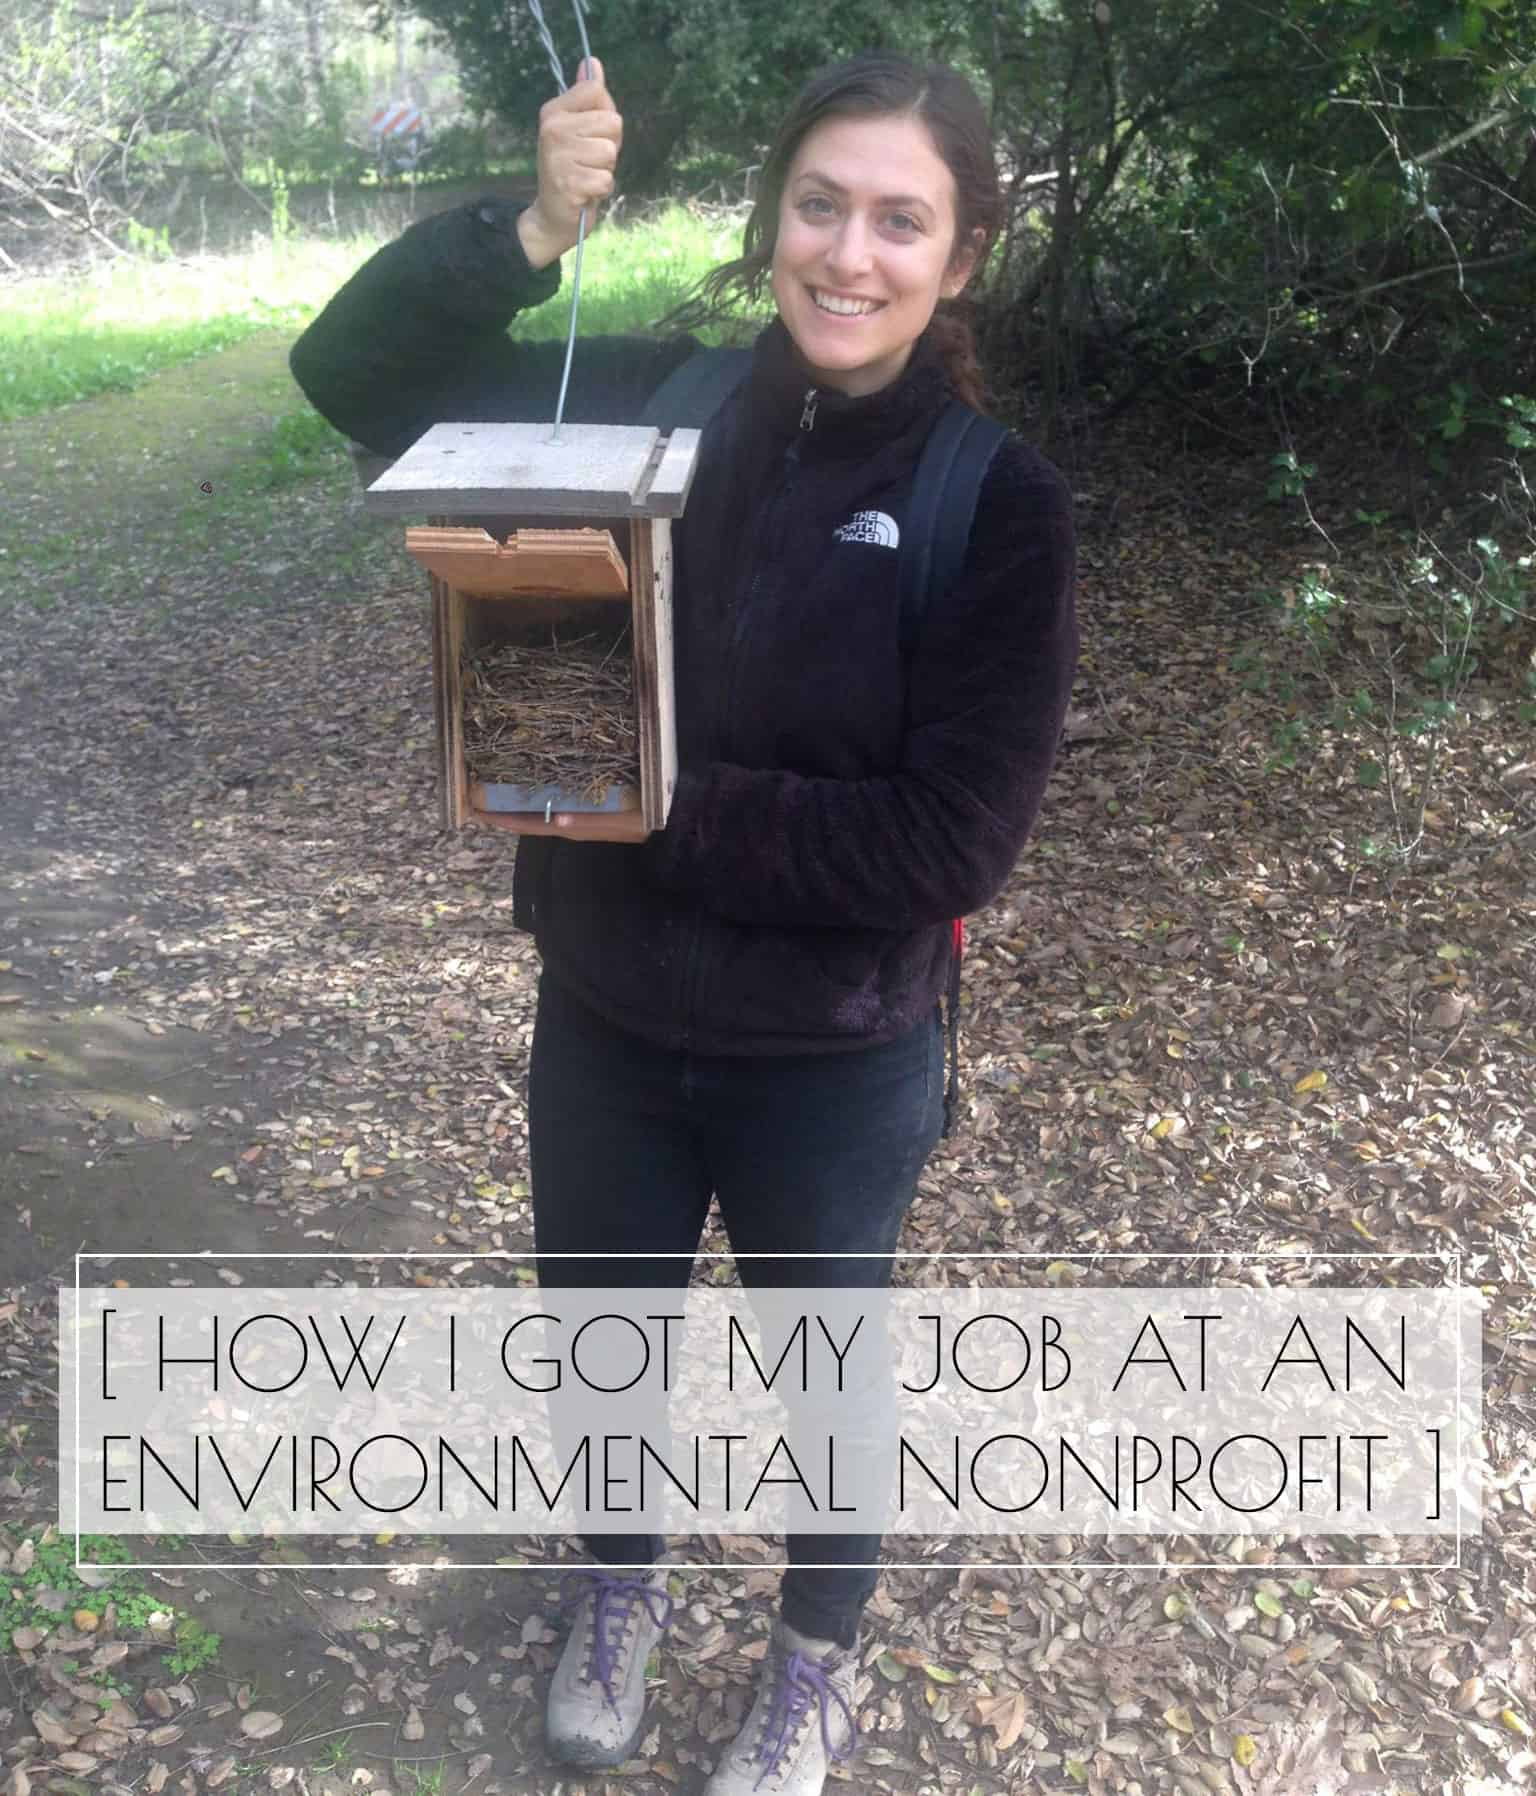 Girl standing with nestbox with nest in it - how i got my job at an environmental nonprofit